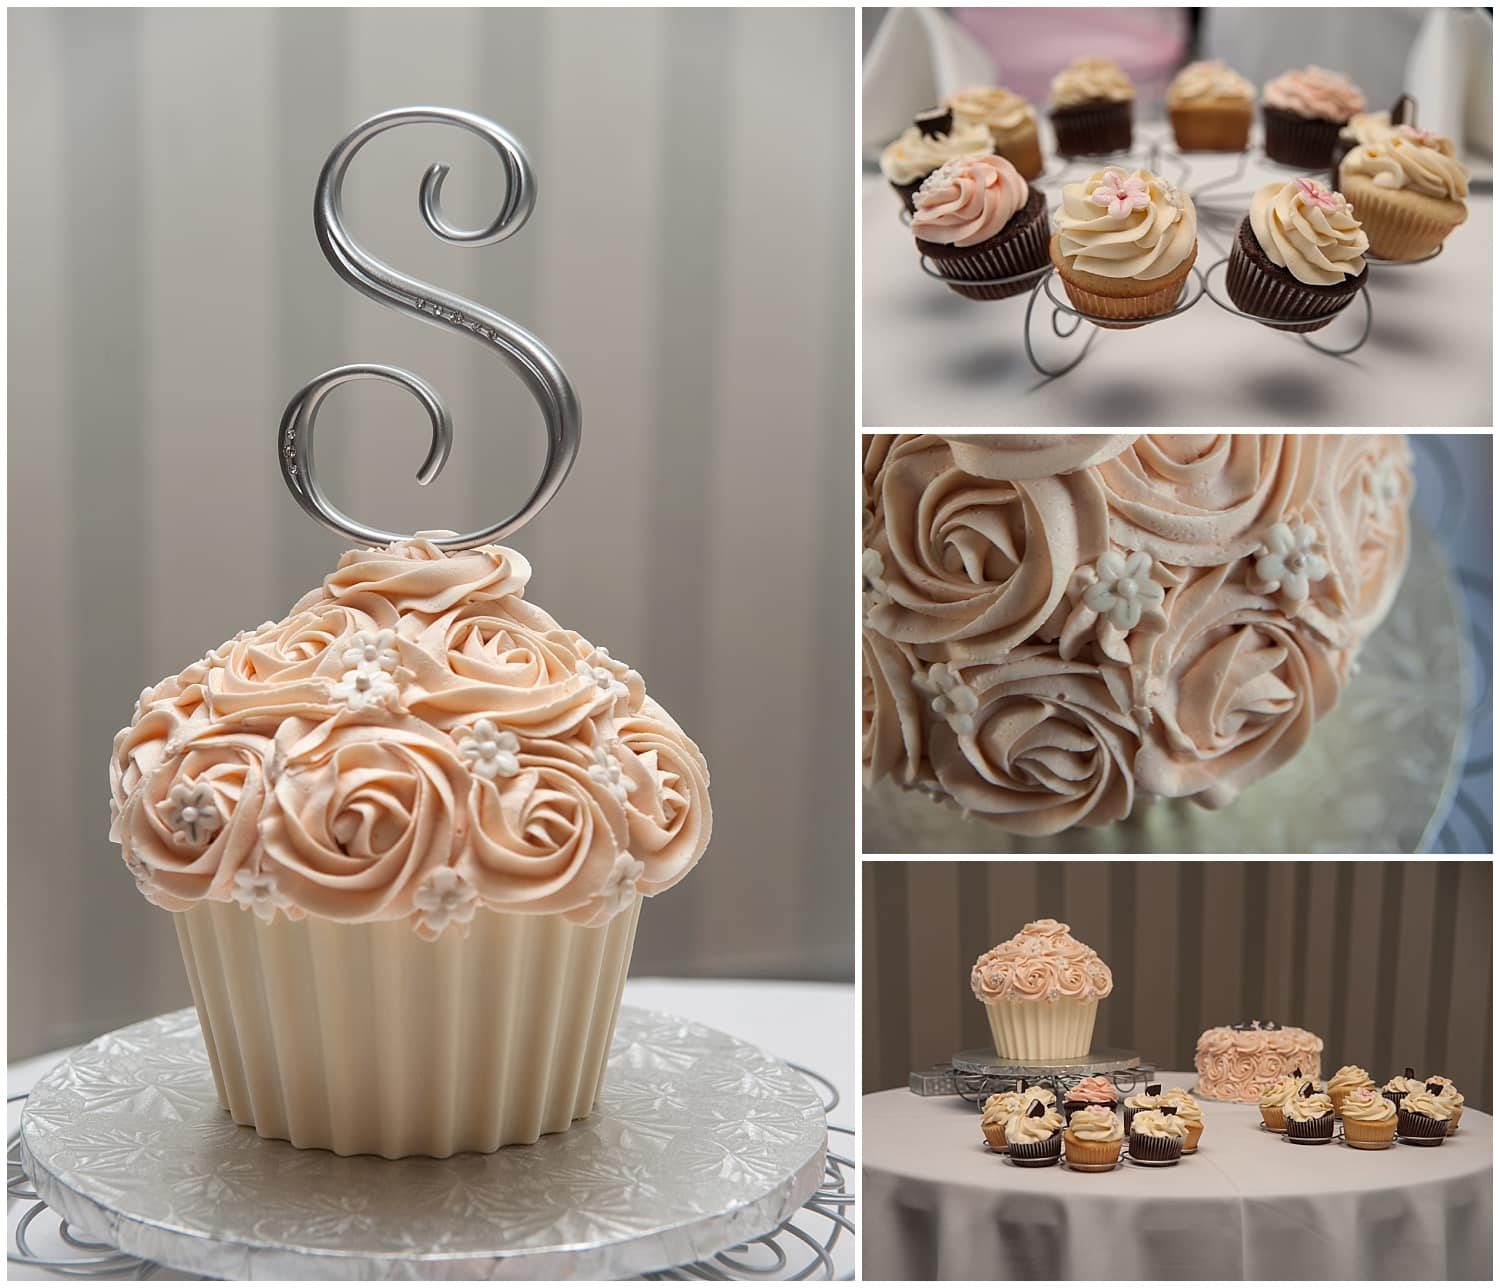 The wedding cupcakes and a huge cupcake for the bride and groom to cut.